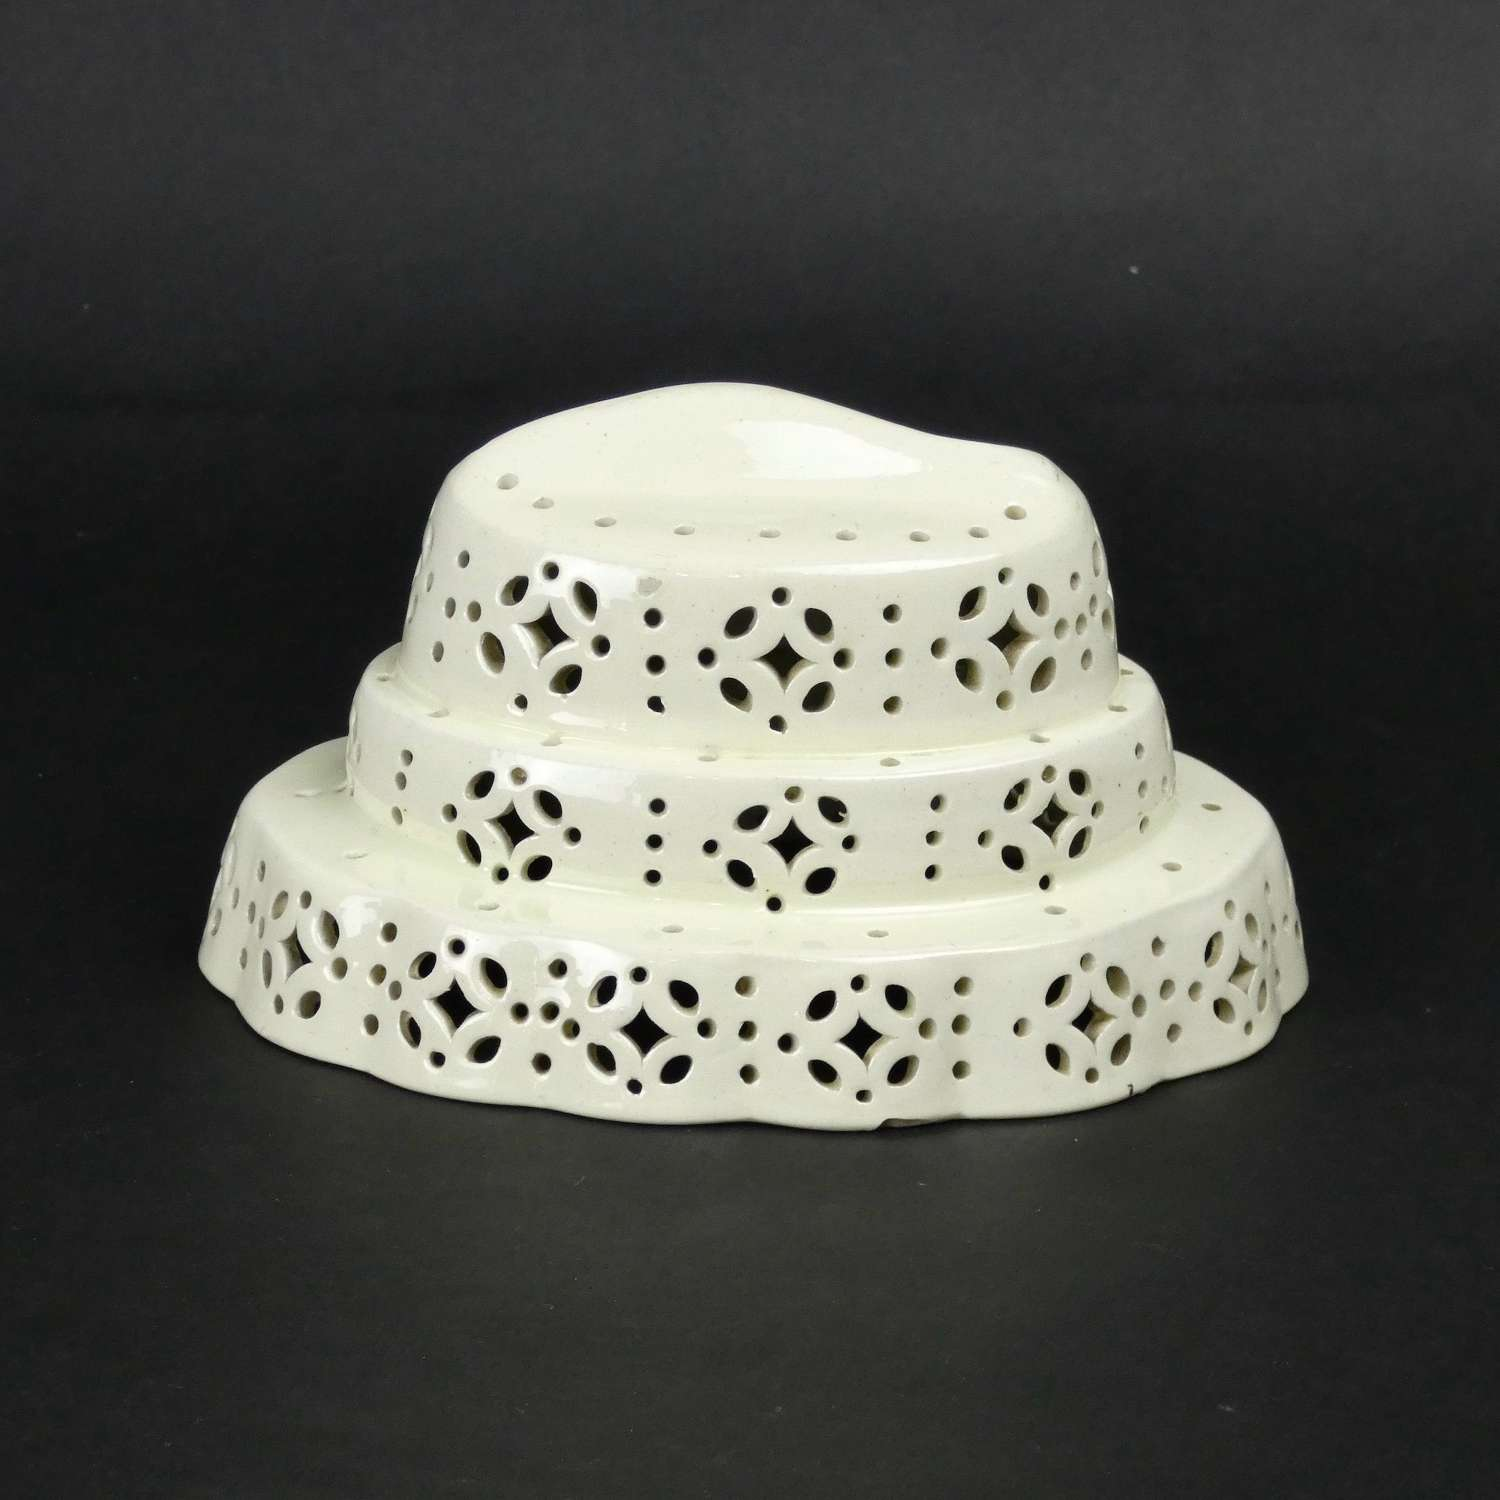 Fish top, creamware curd cheese mould